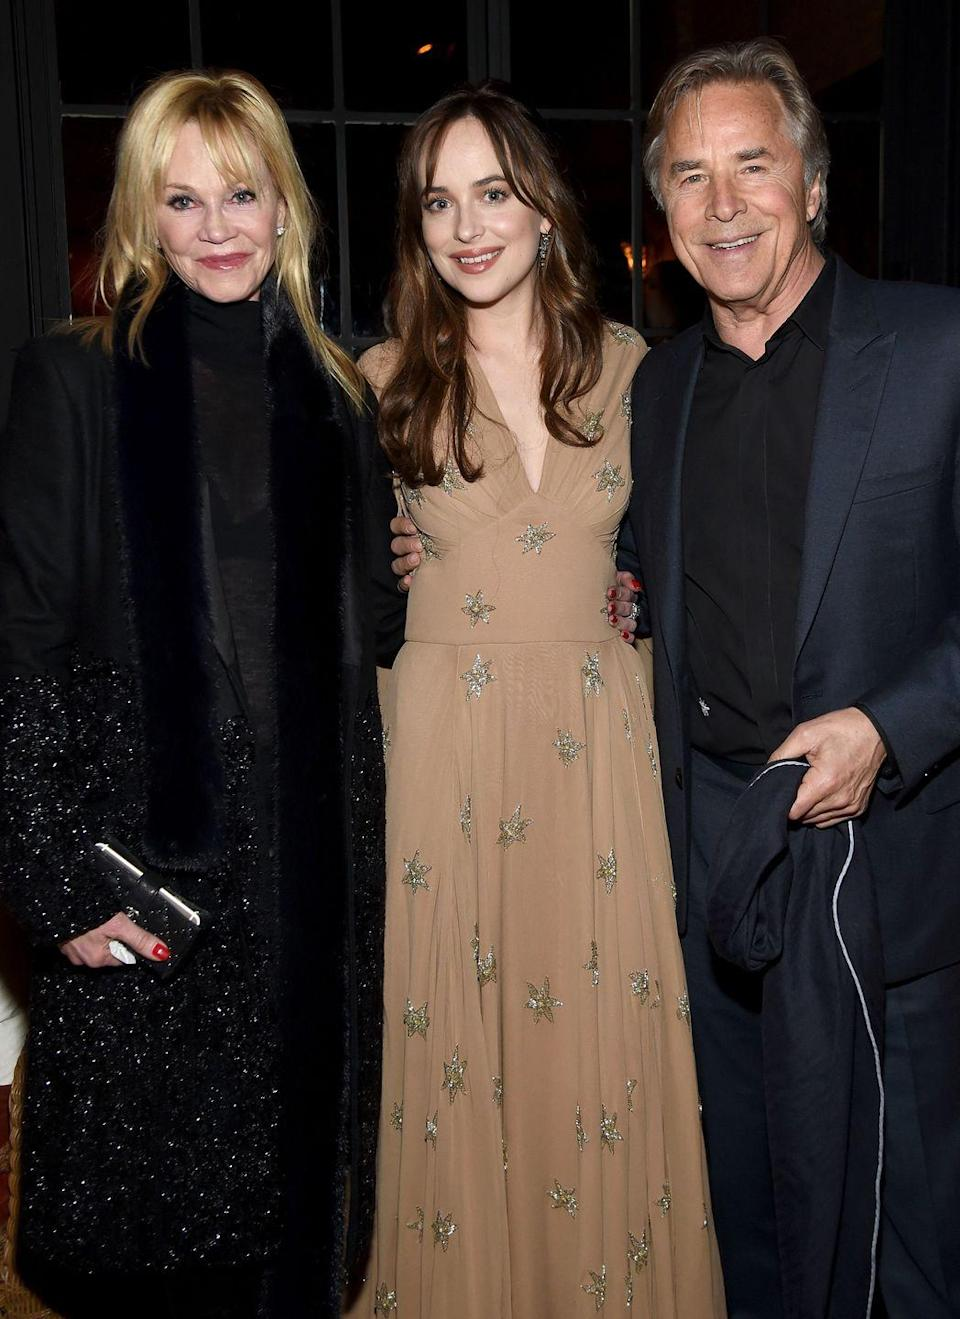 """<p><strong>Famous parent(s): </strong>actors Don Johnson and Melanie Griffith <br><strong>Wh</strong><strong>at it was like: </strong>As she has put it, she grew up watching both her parents on screen. """"I lost my mind! I couldn't deal with that at all.""""</p>"""